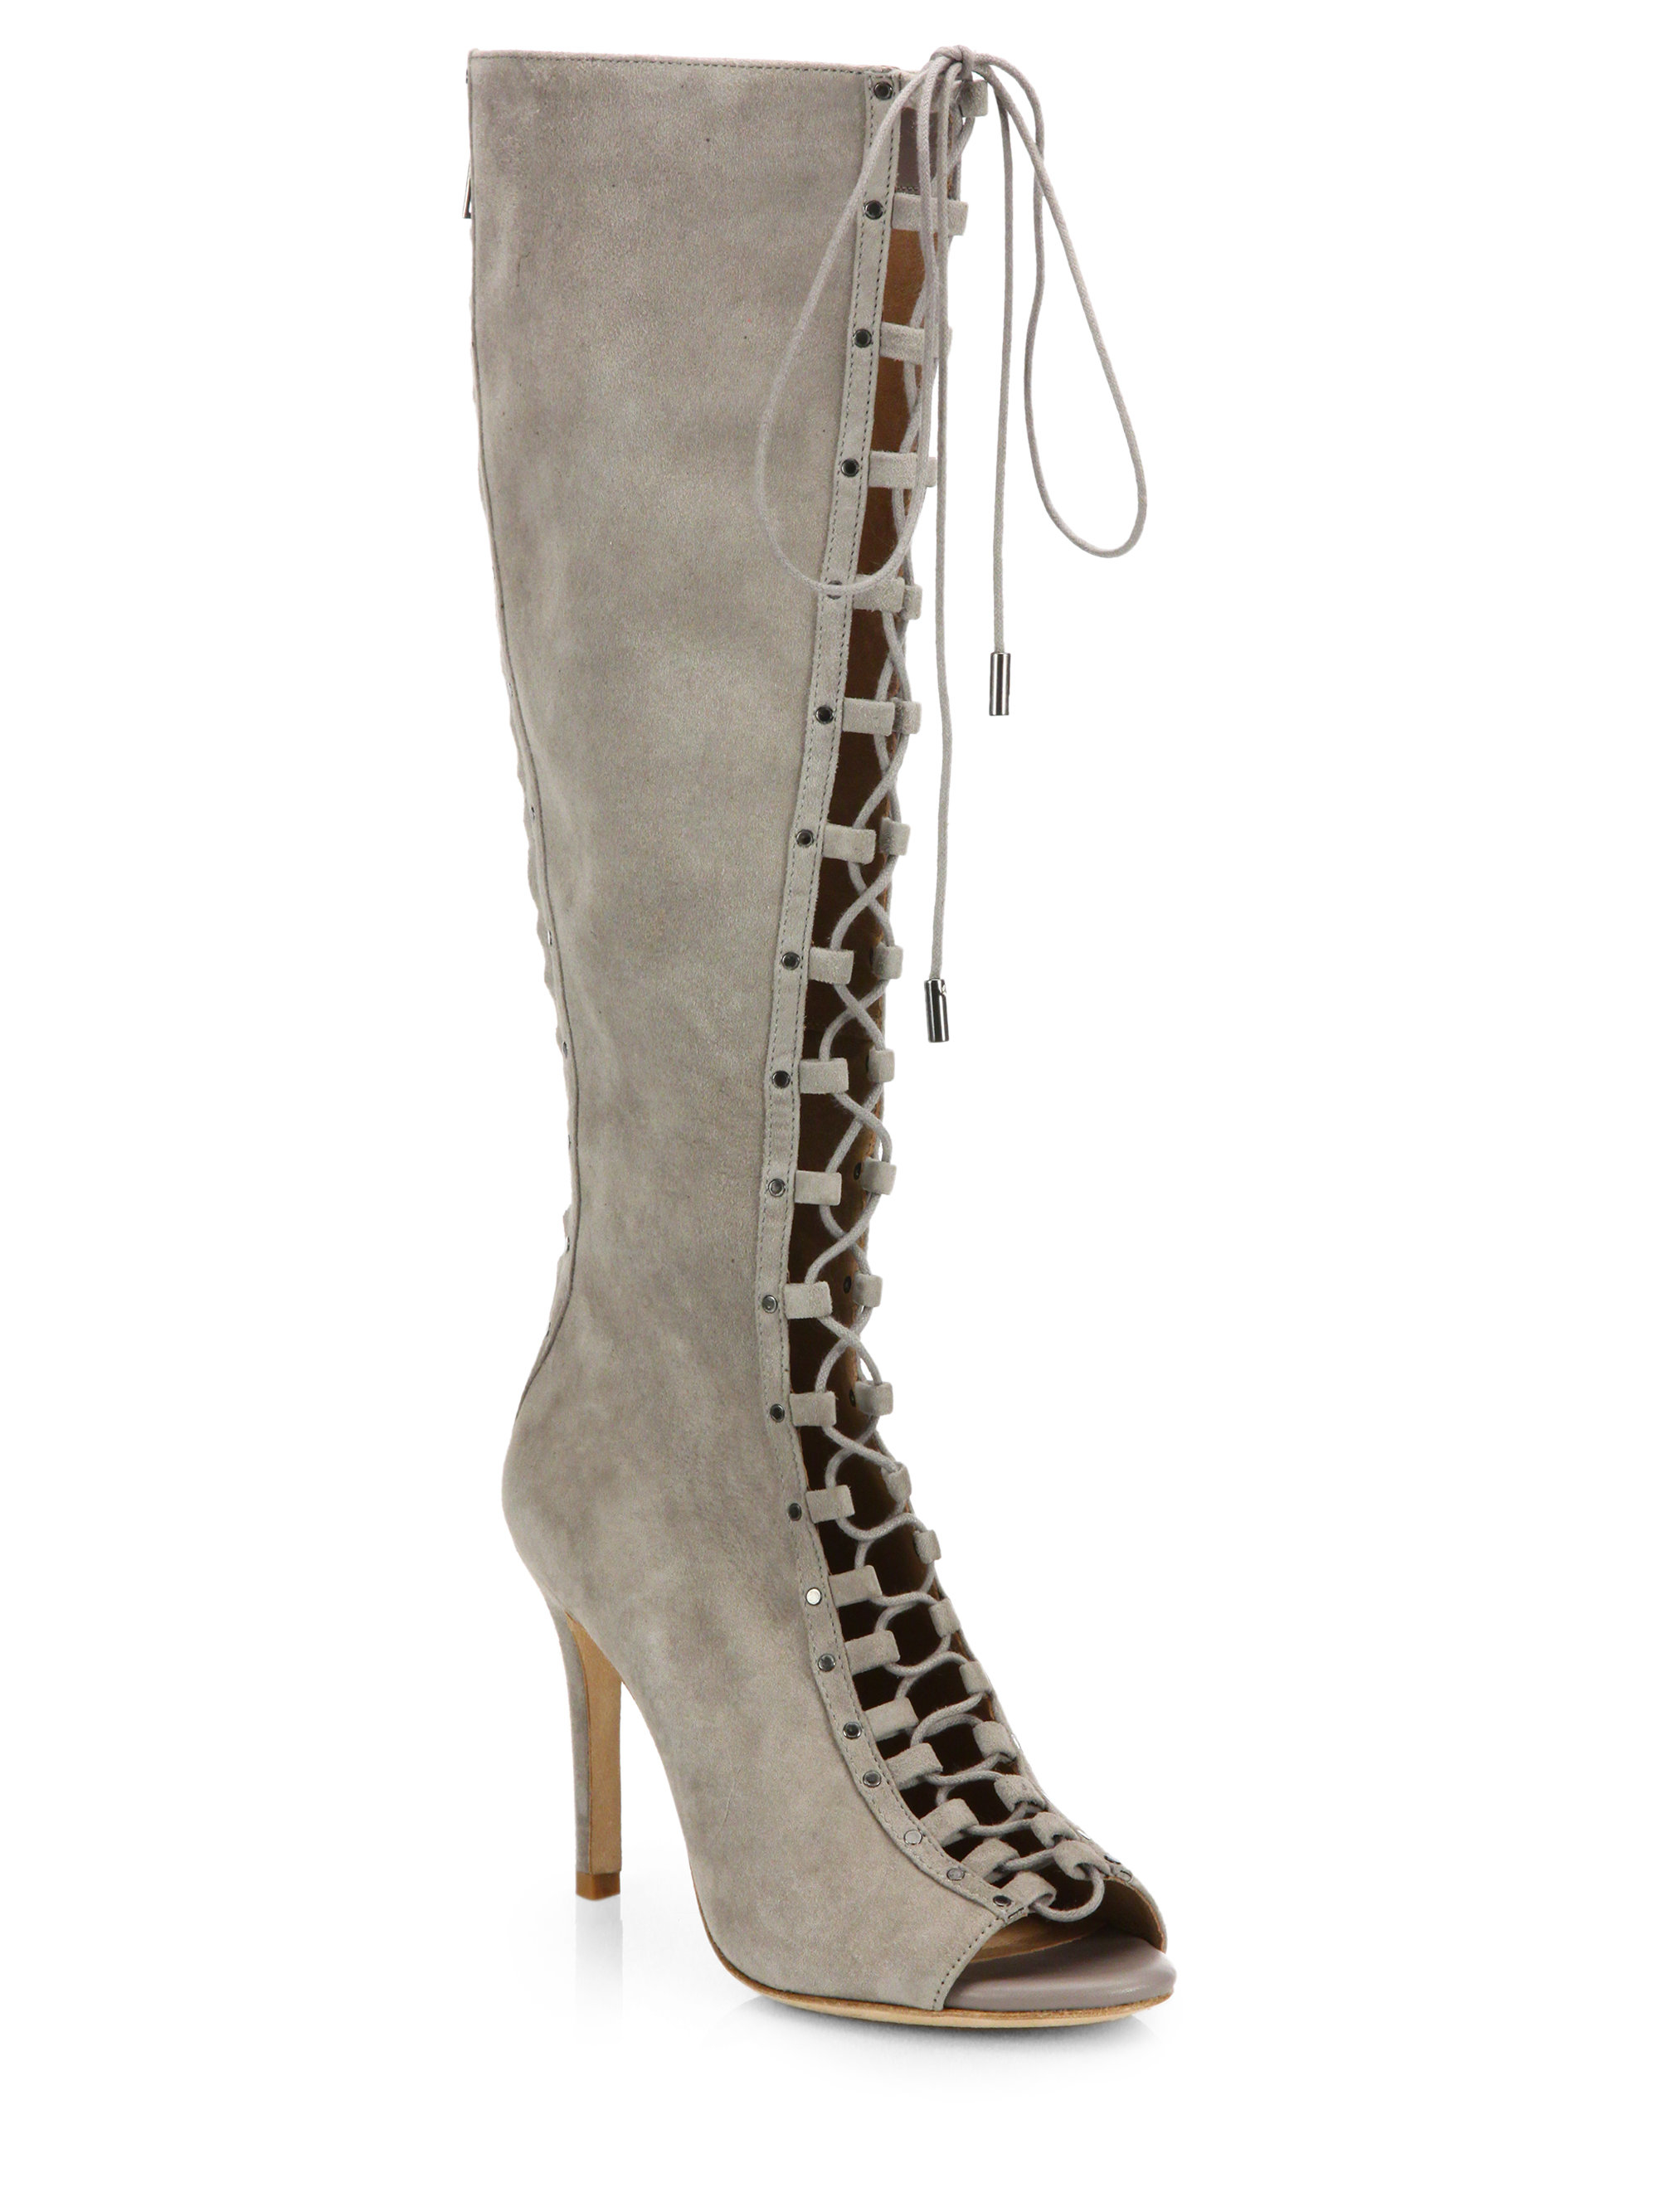 Joie Aubrey Suede Lace-up Peep-toe Knee Boots in Gray | Lyst